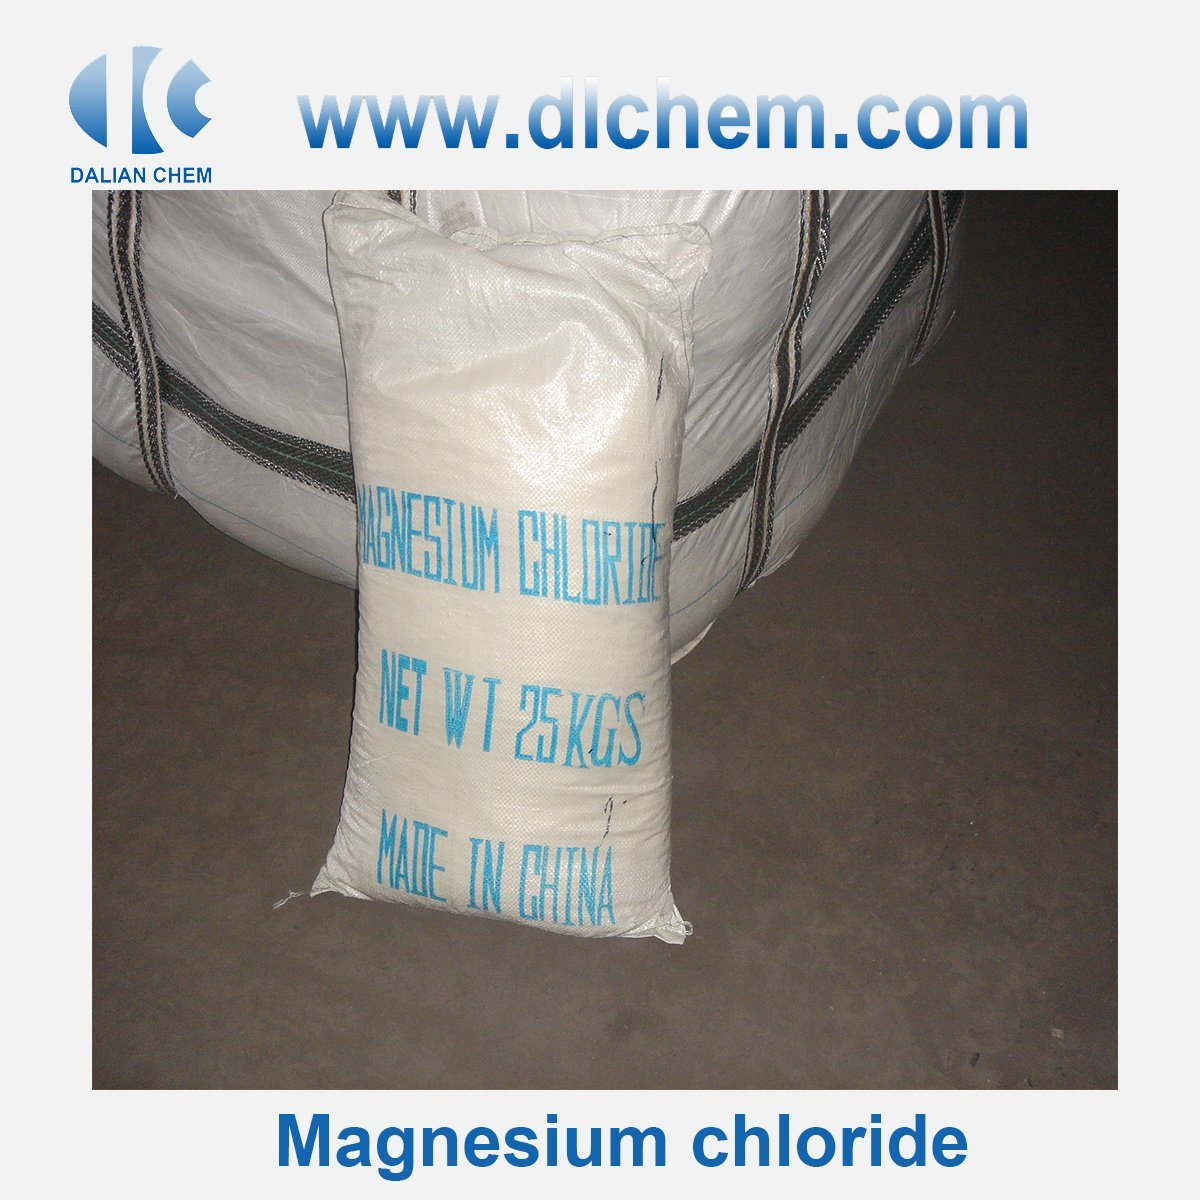 Wholesale Magnesium Chloride Chemical - Buy Reliable